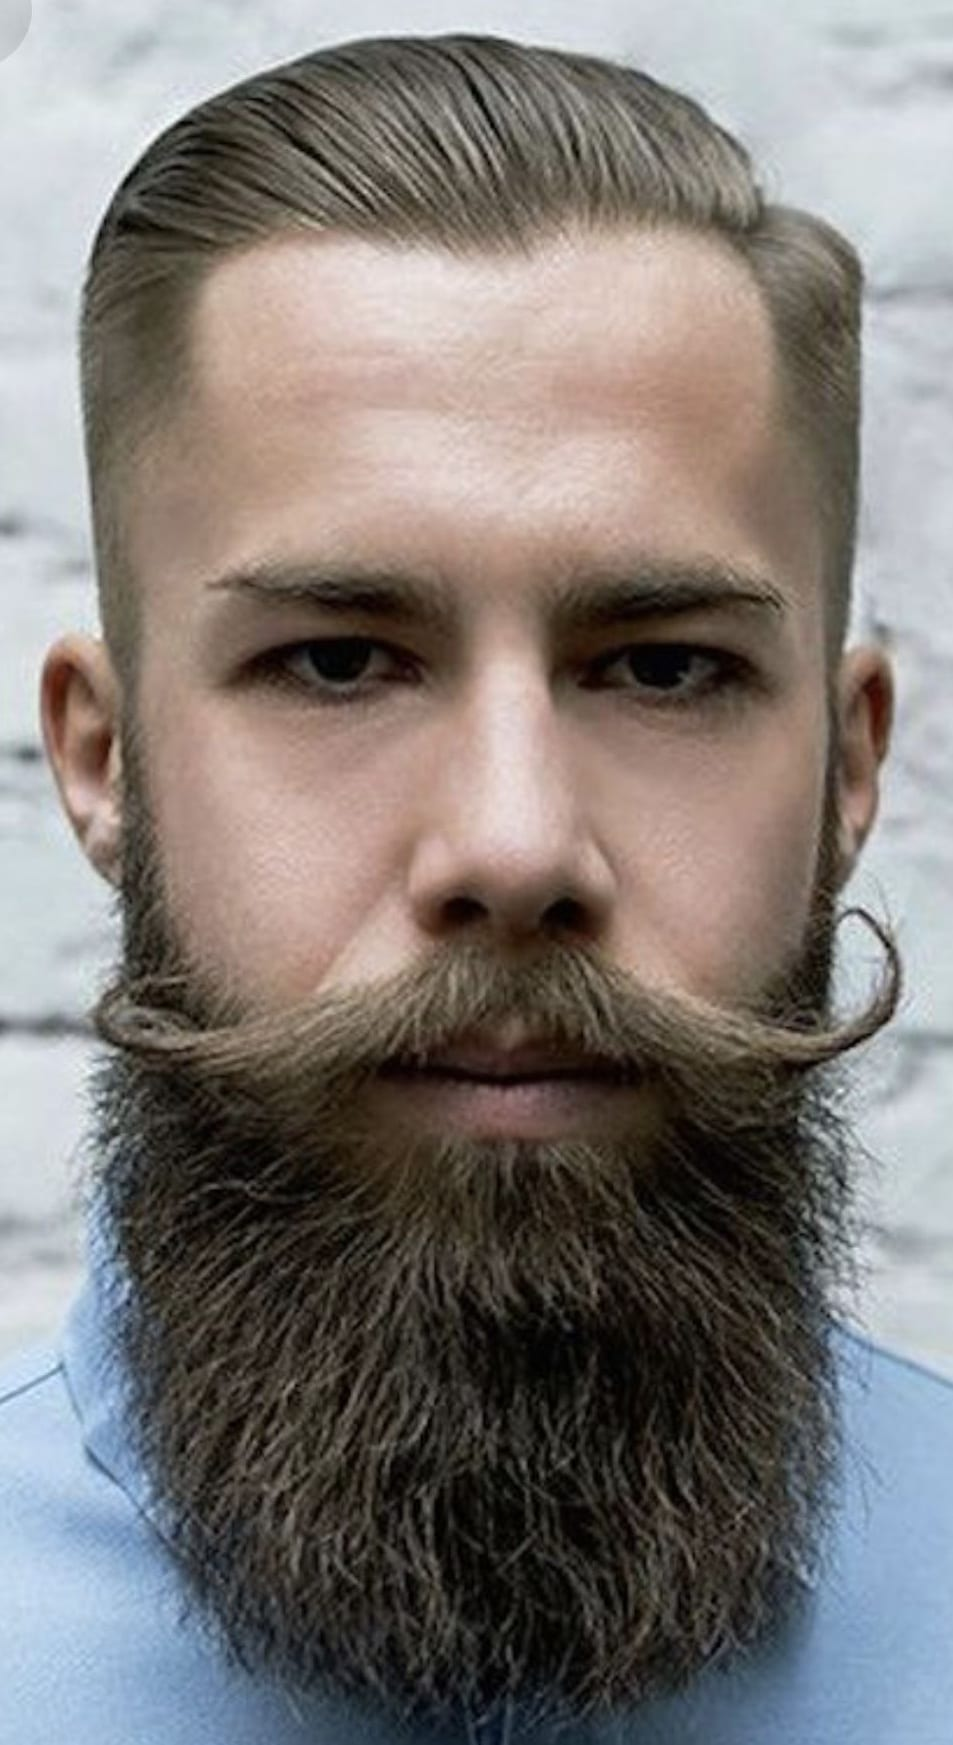 Imperial Beard with Handlebar Mustache for men to try